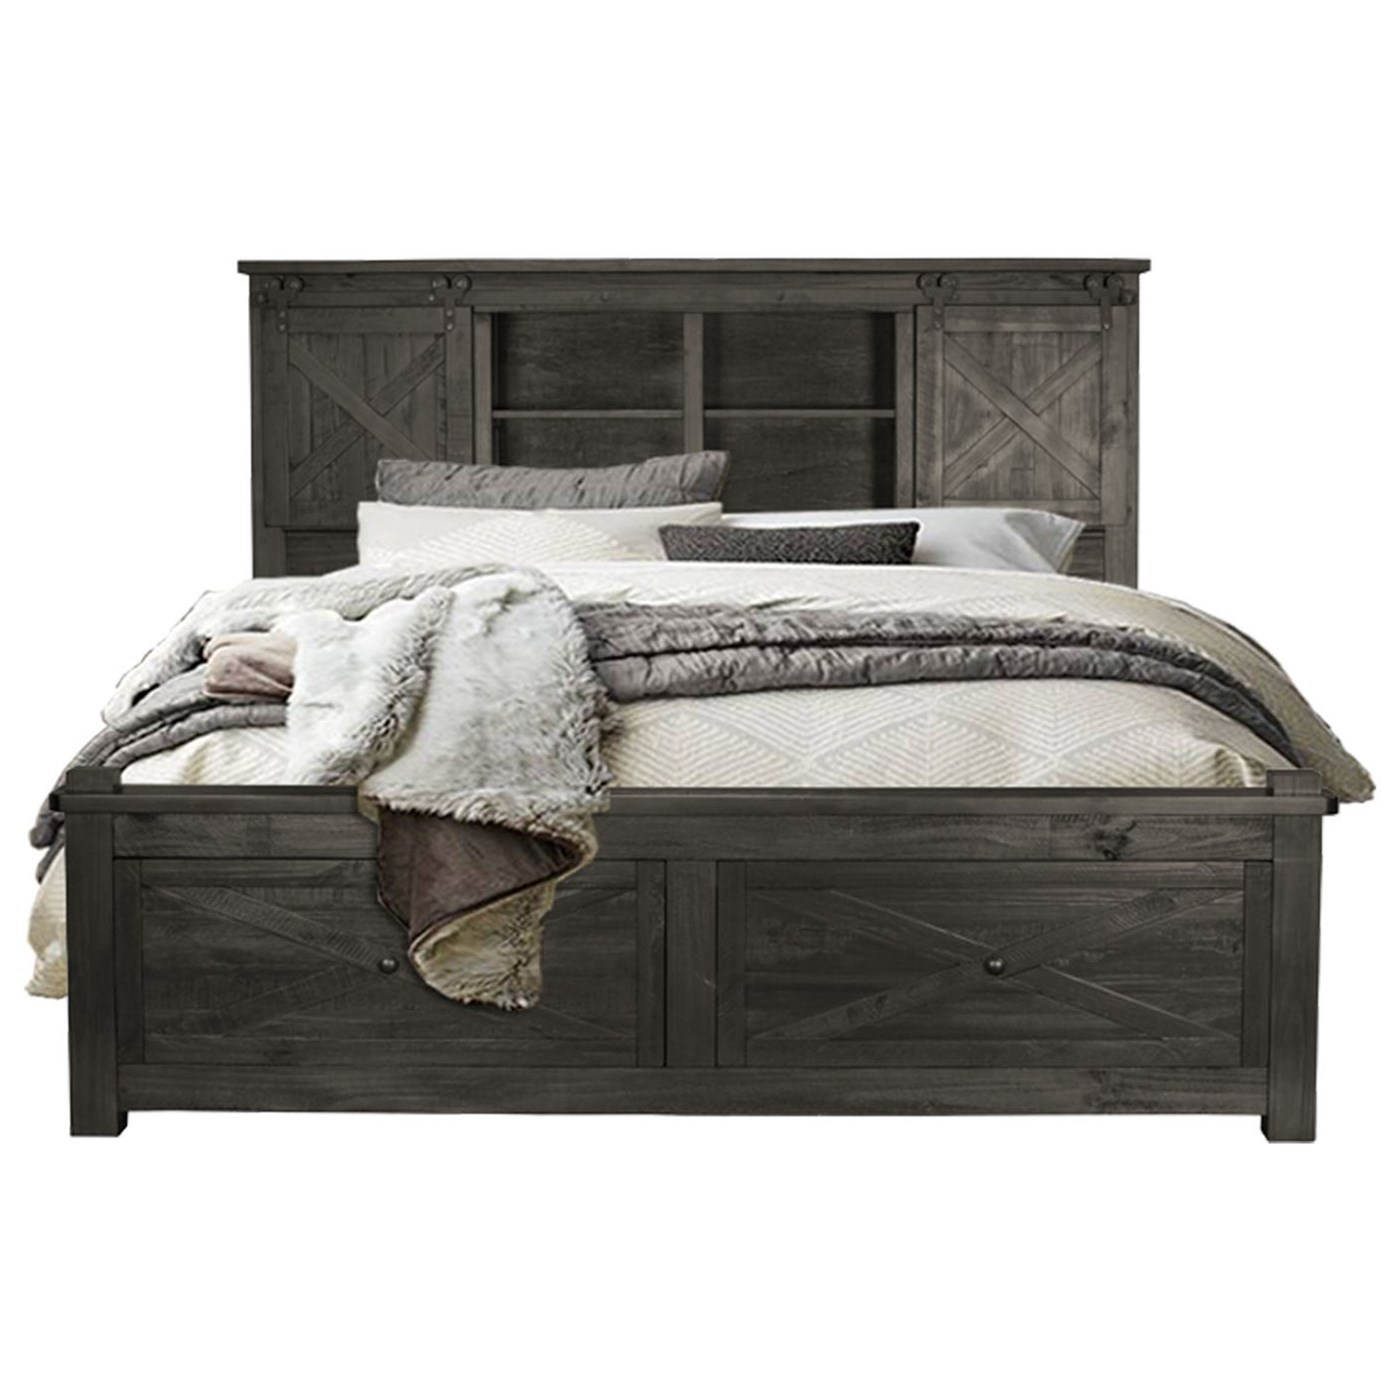 Queen Bookcase Bed with Footboard Storage